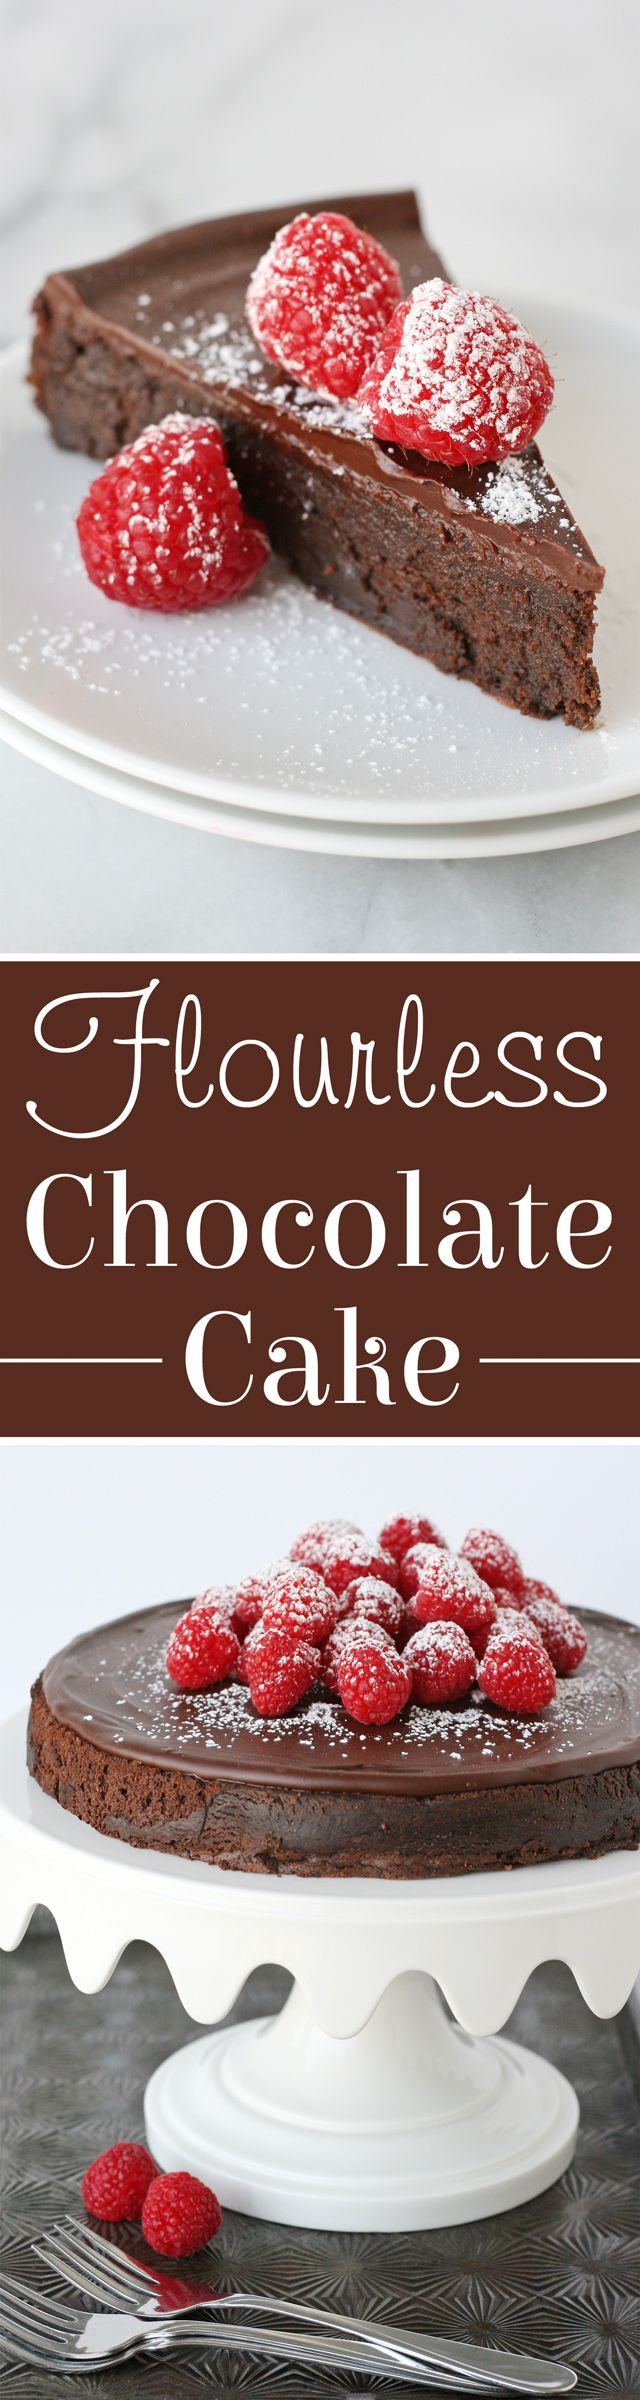 The ultimate chocolate treat! Rich & delicious Flourless Chocolate Cake! (valentines sweets delicious food)